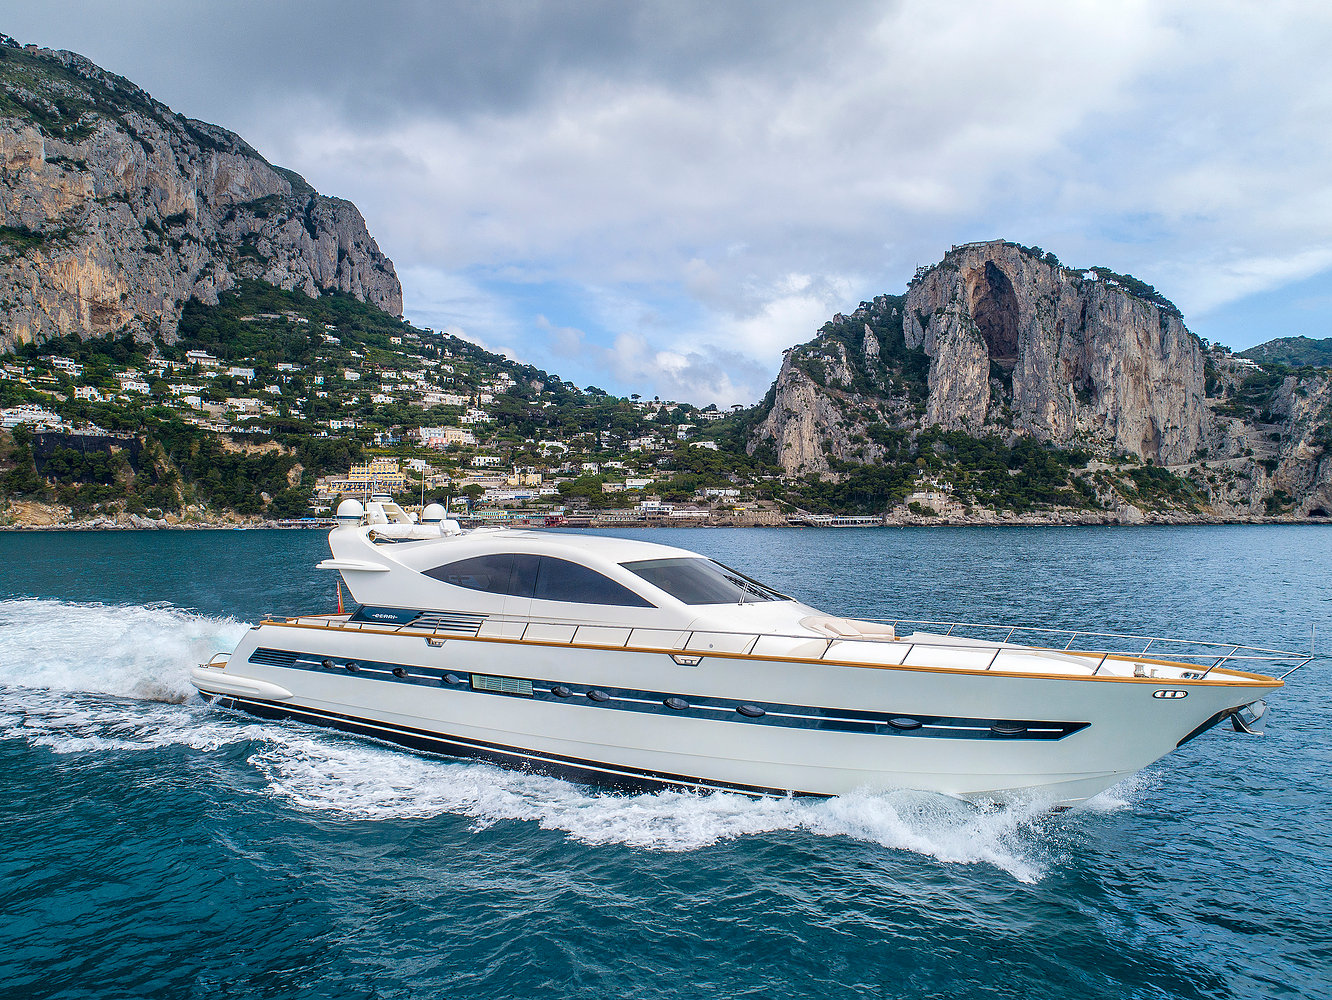 Luxury yacht for Charter | MOKI by CCN - Cerri Cantieri Navali